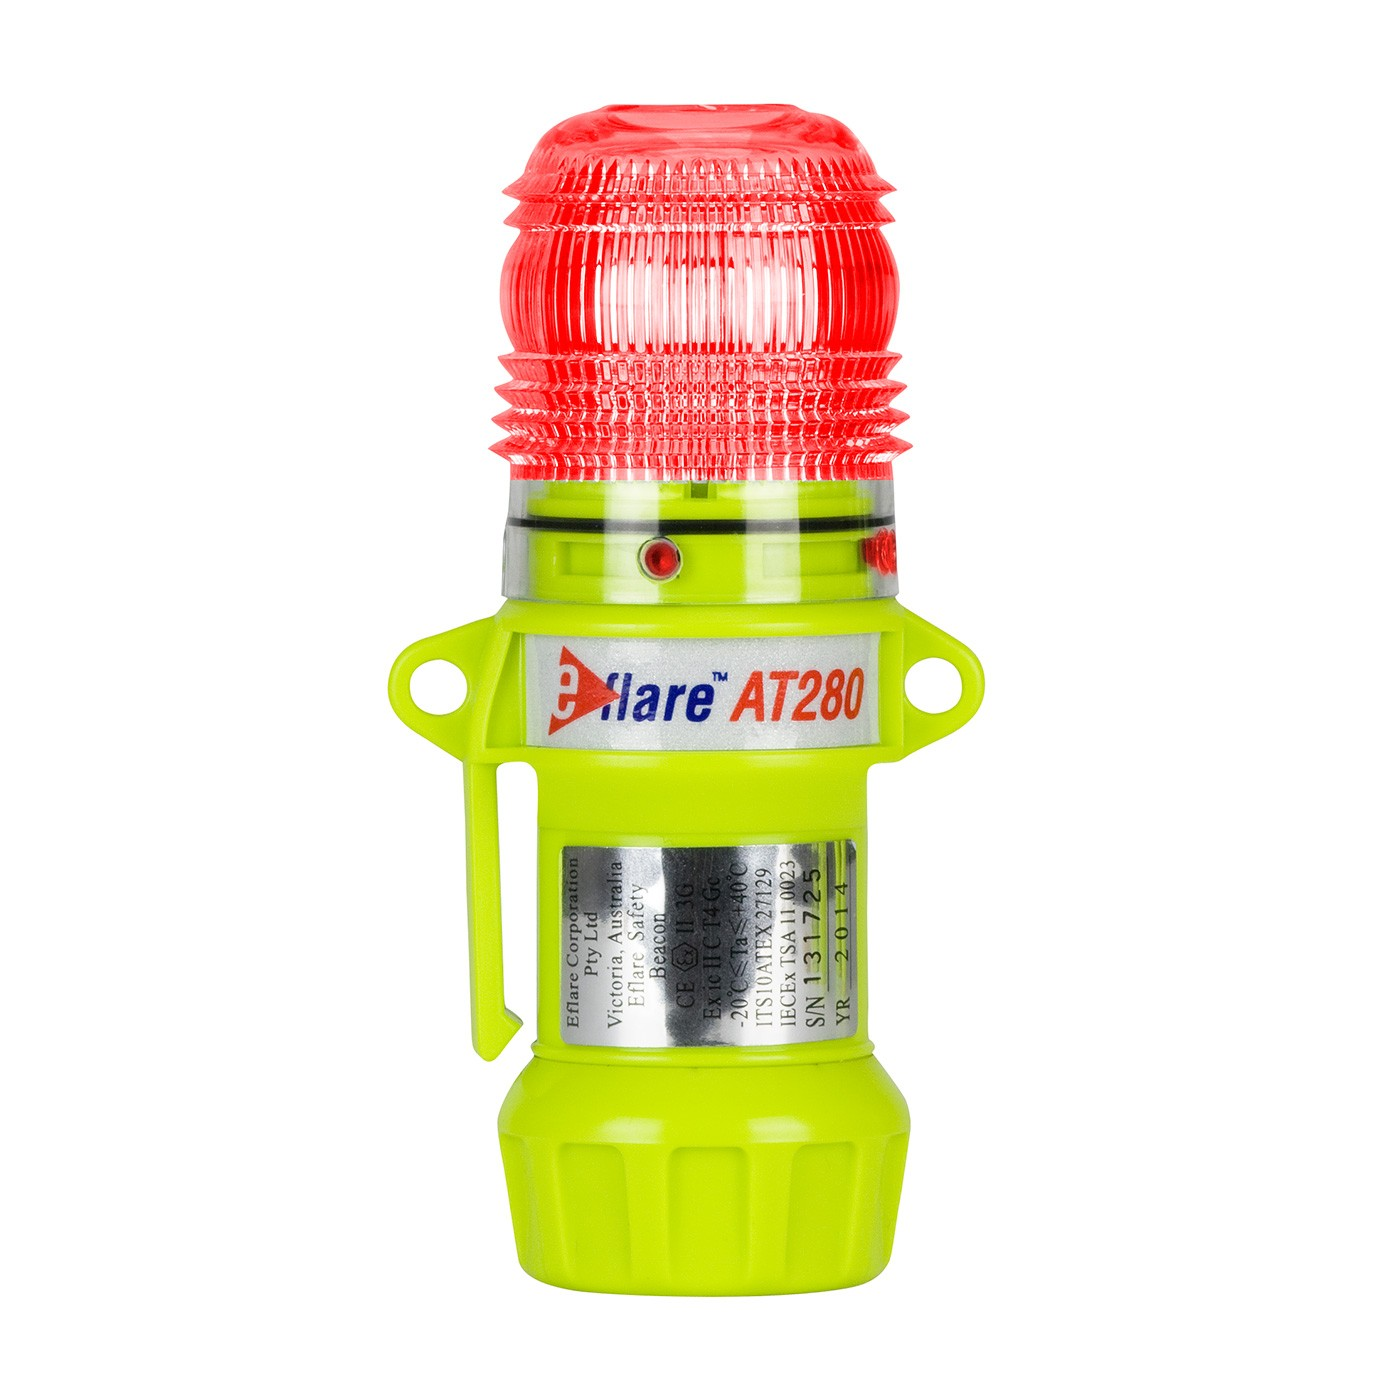 "Eflare™ 6"" Safety & Emergency Beacon - Flashing / Steady-On Red  (#939-AT280-R)"